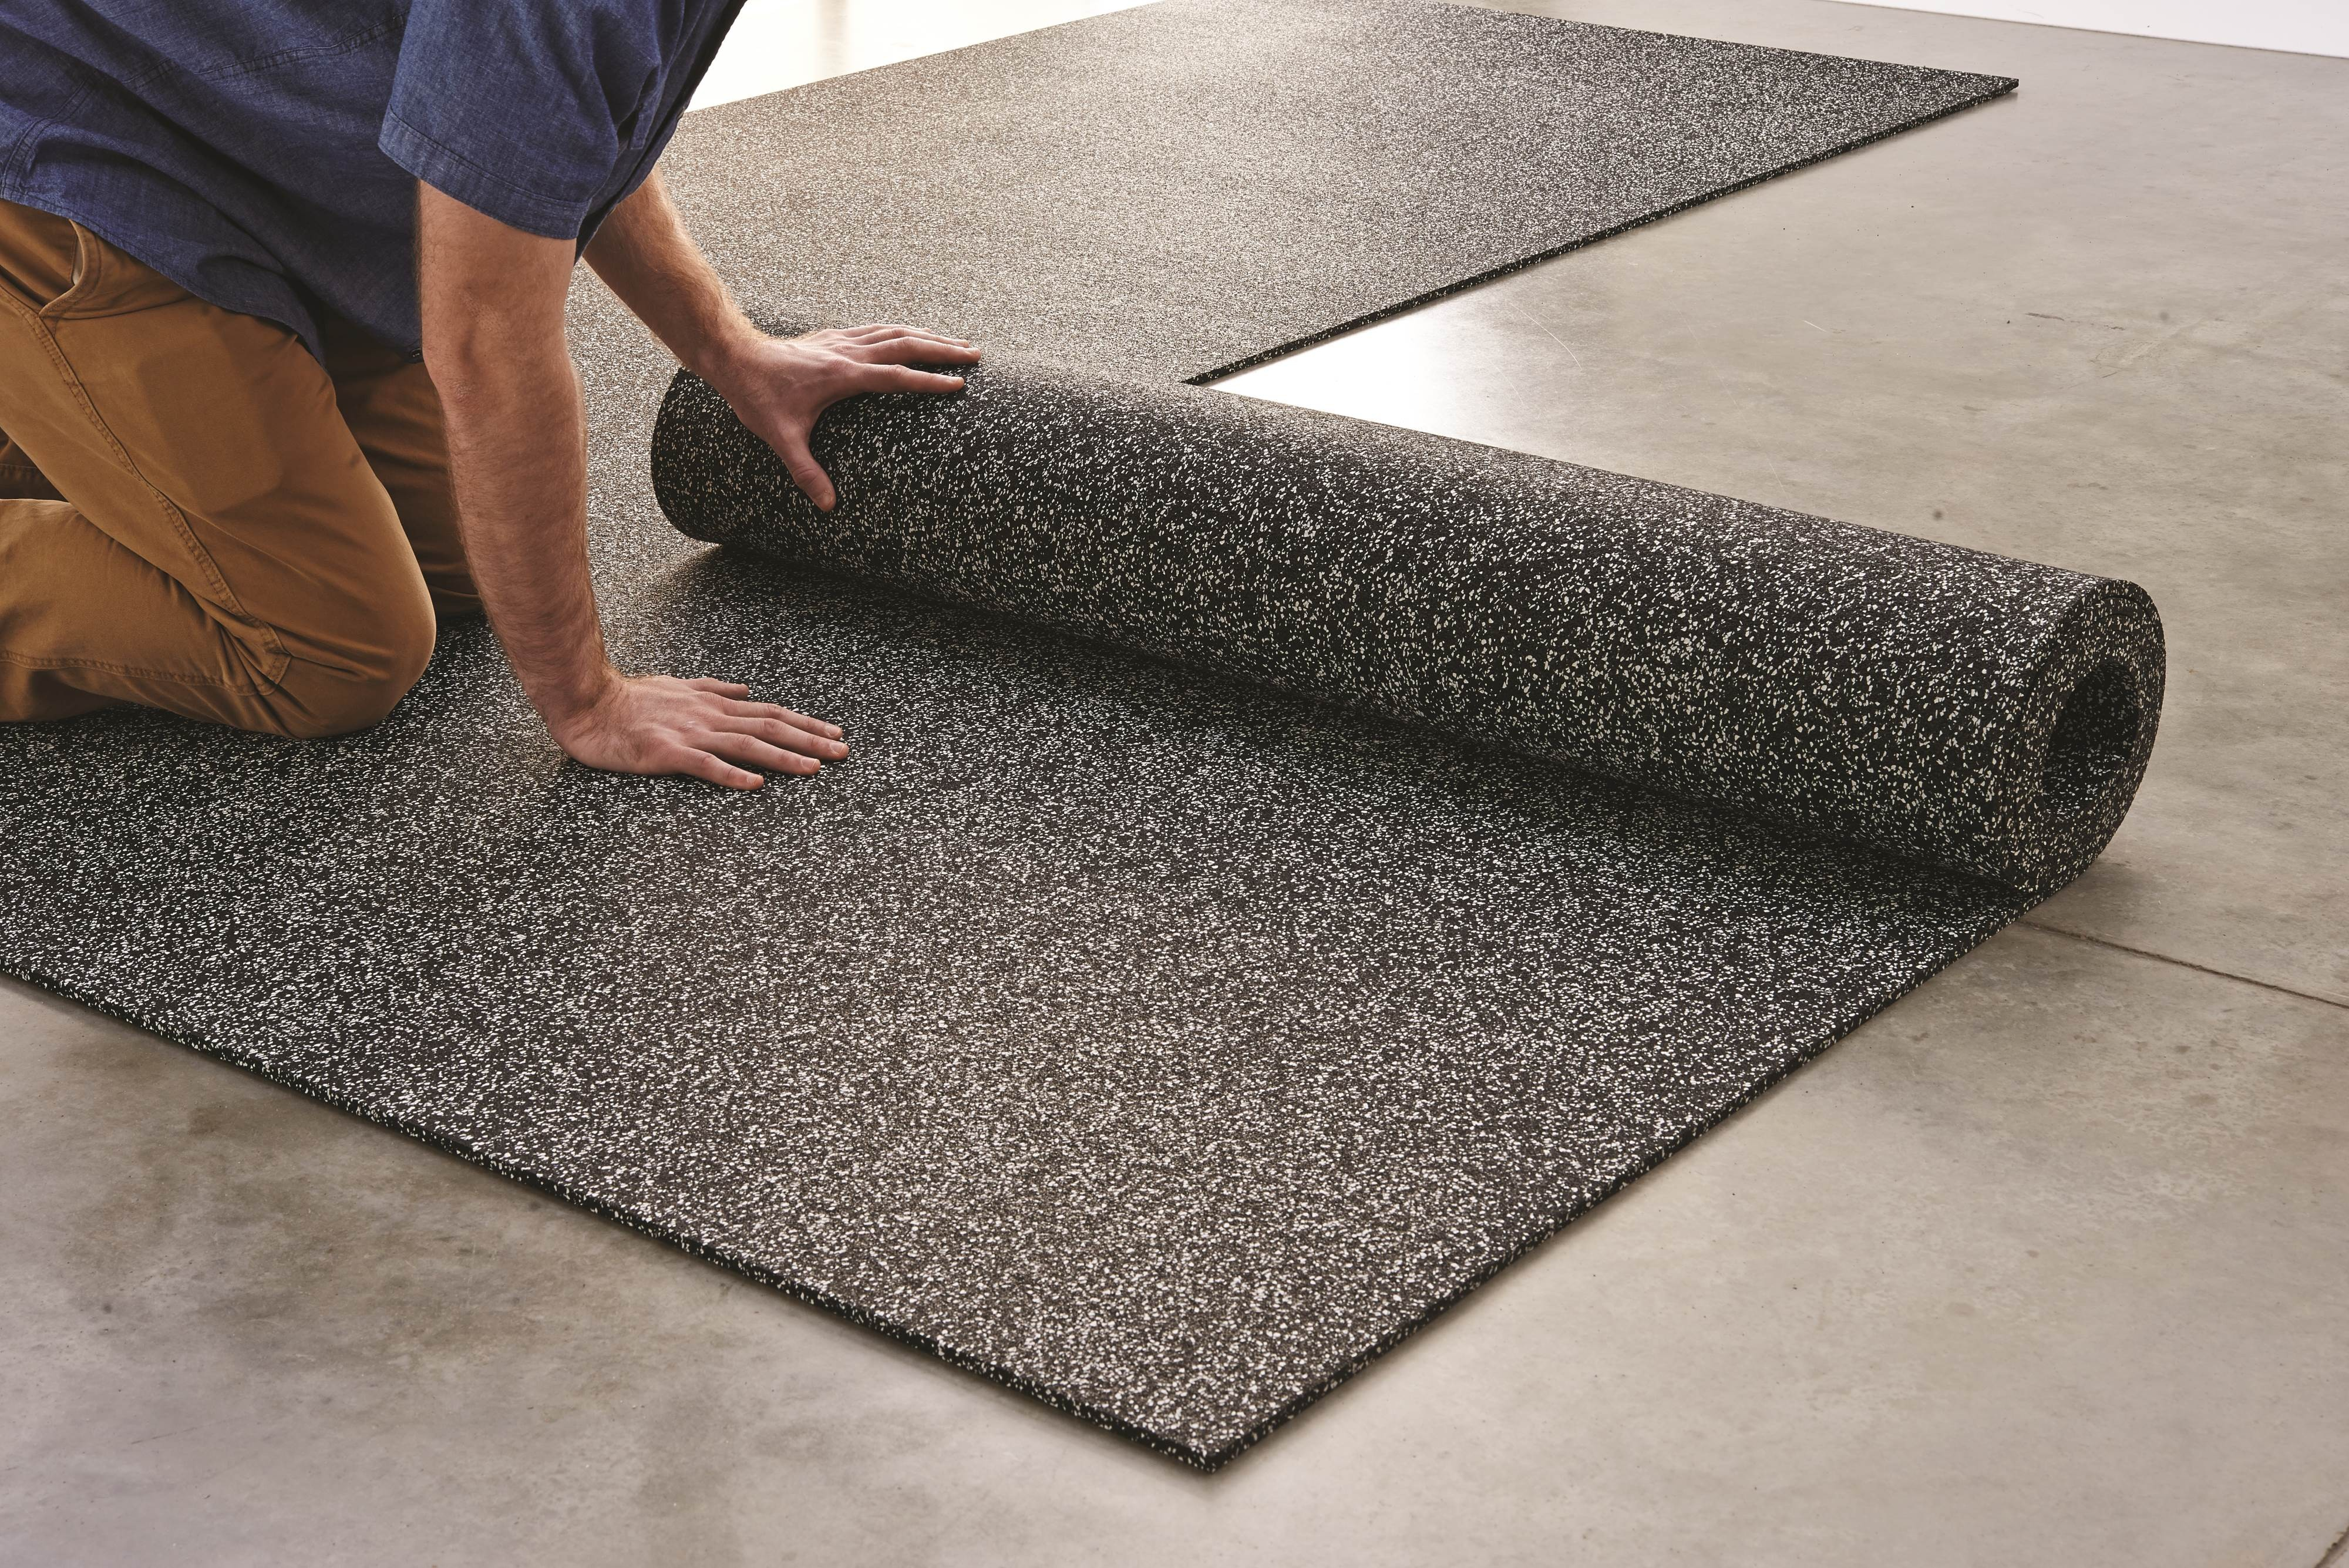 Survivor Sports Rolled Rubber Flooring